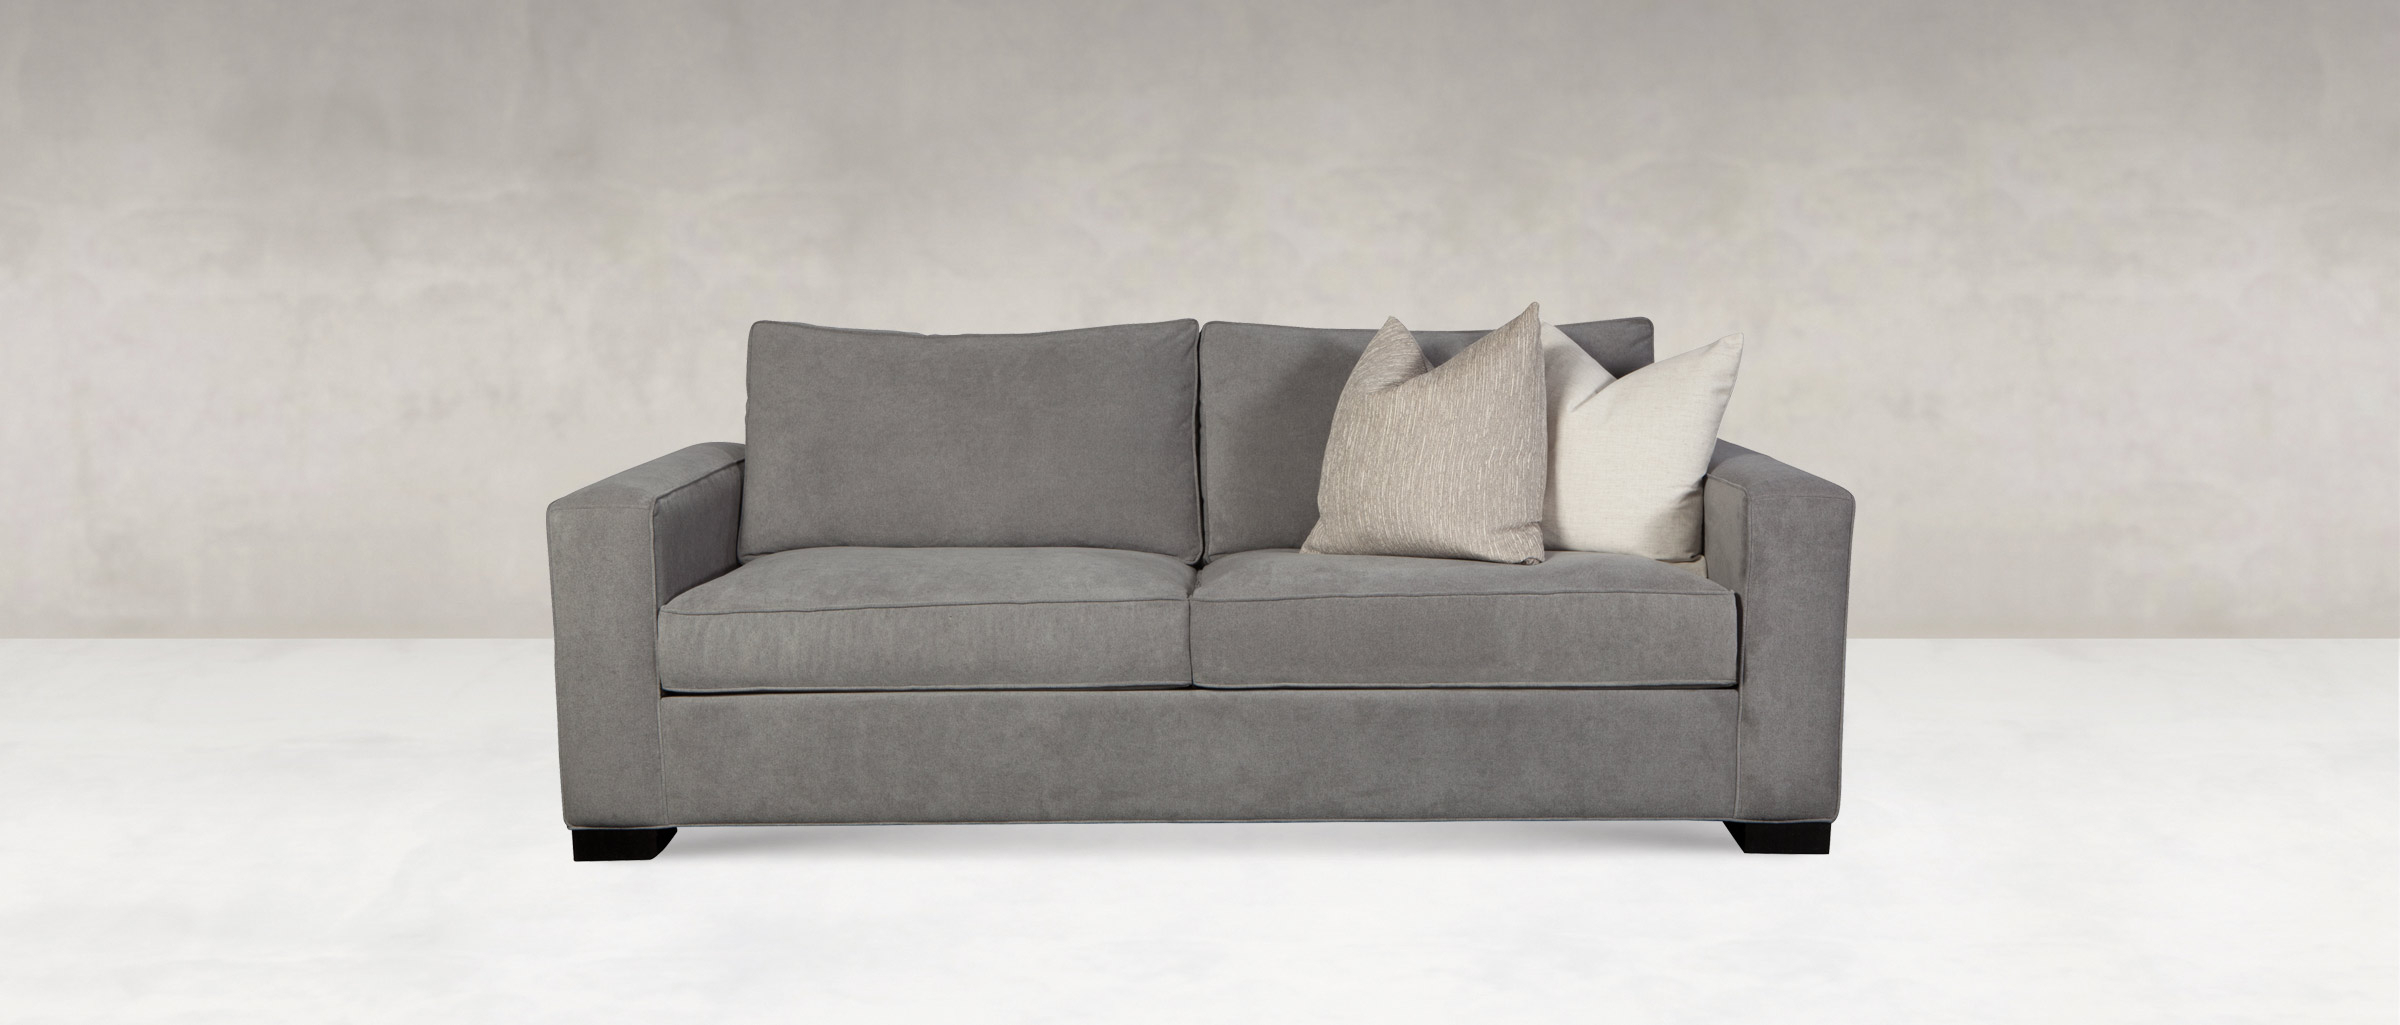 Widely Used Grace Sofa Chairs Pertaining To Younger + Co (View 13 of 20)